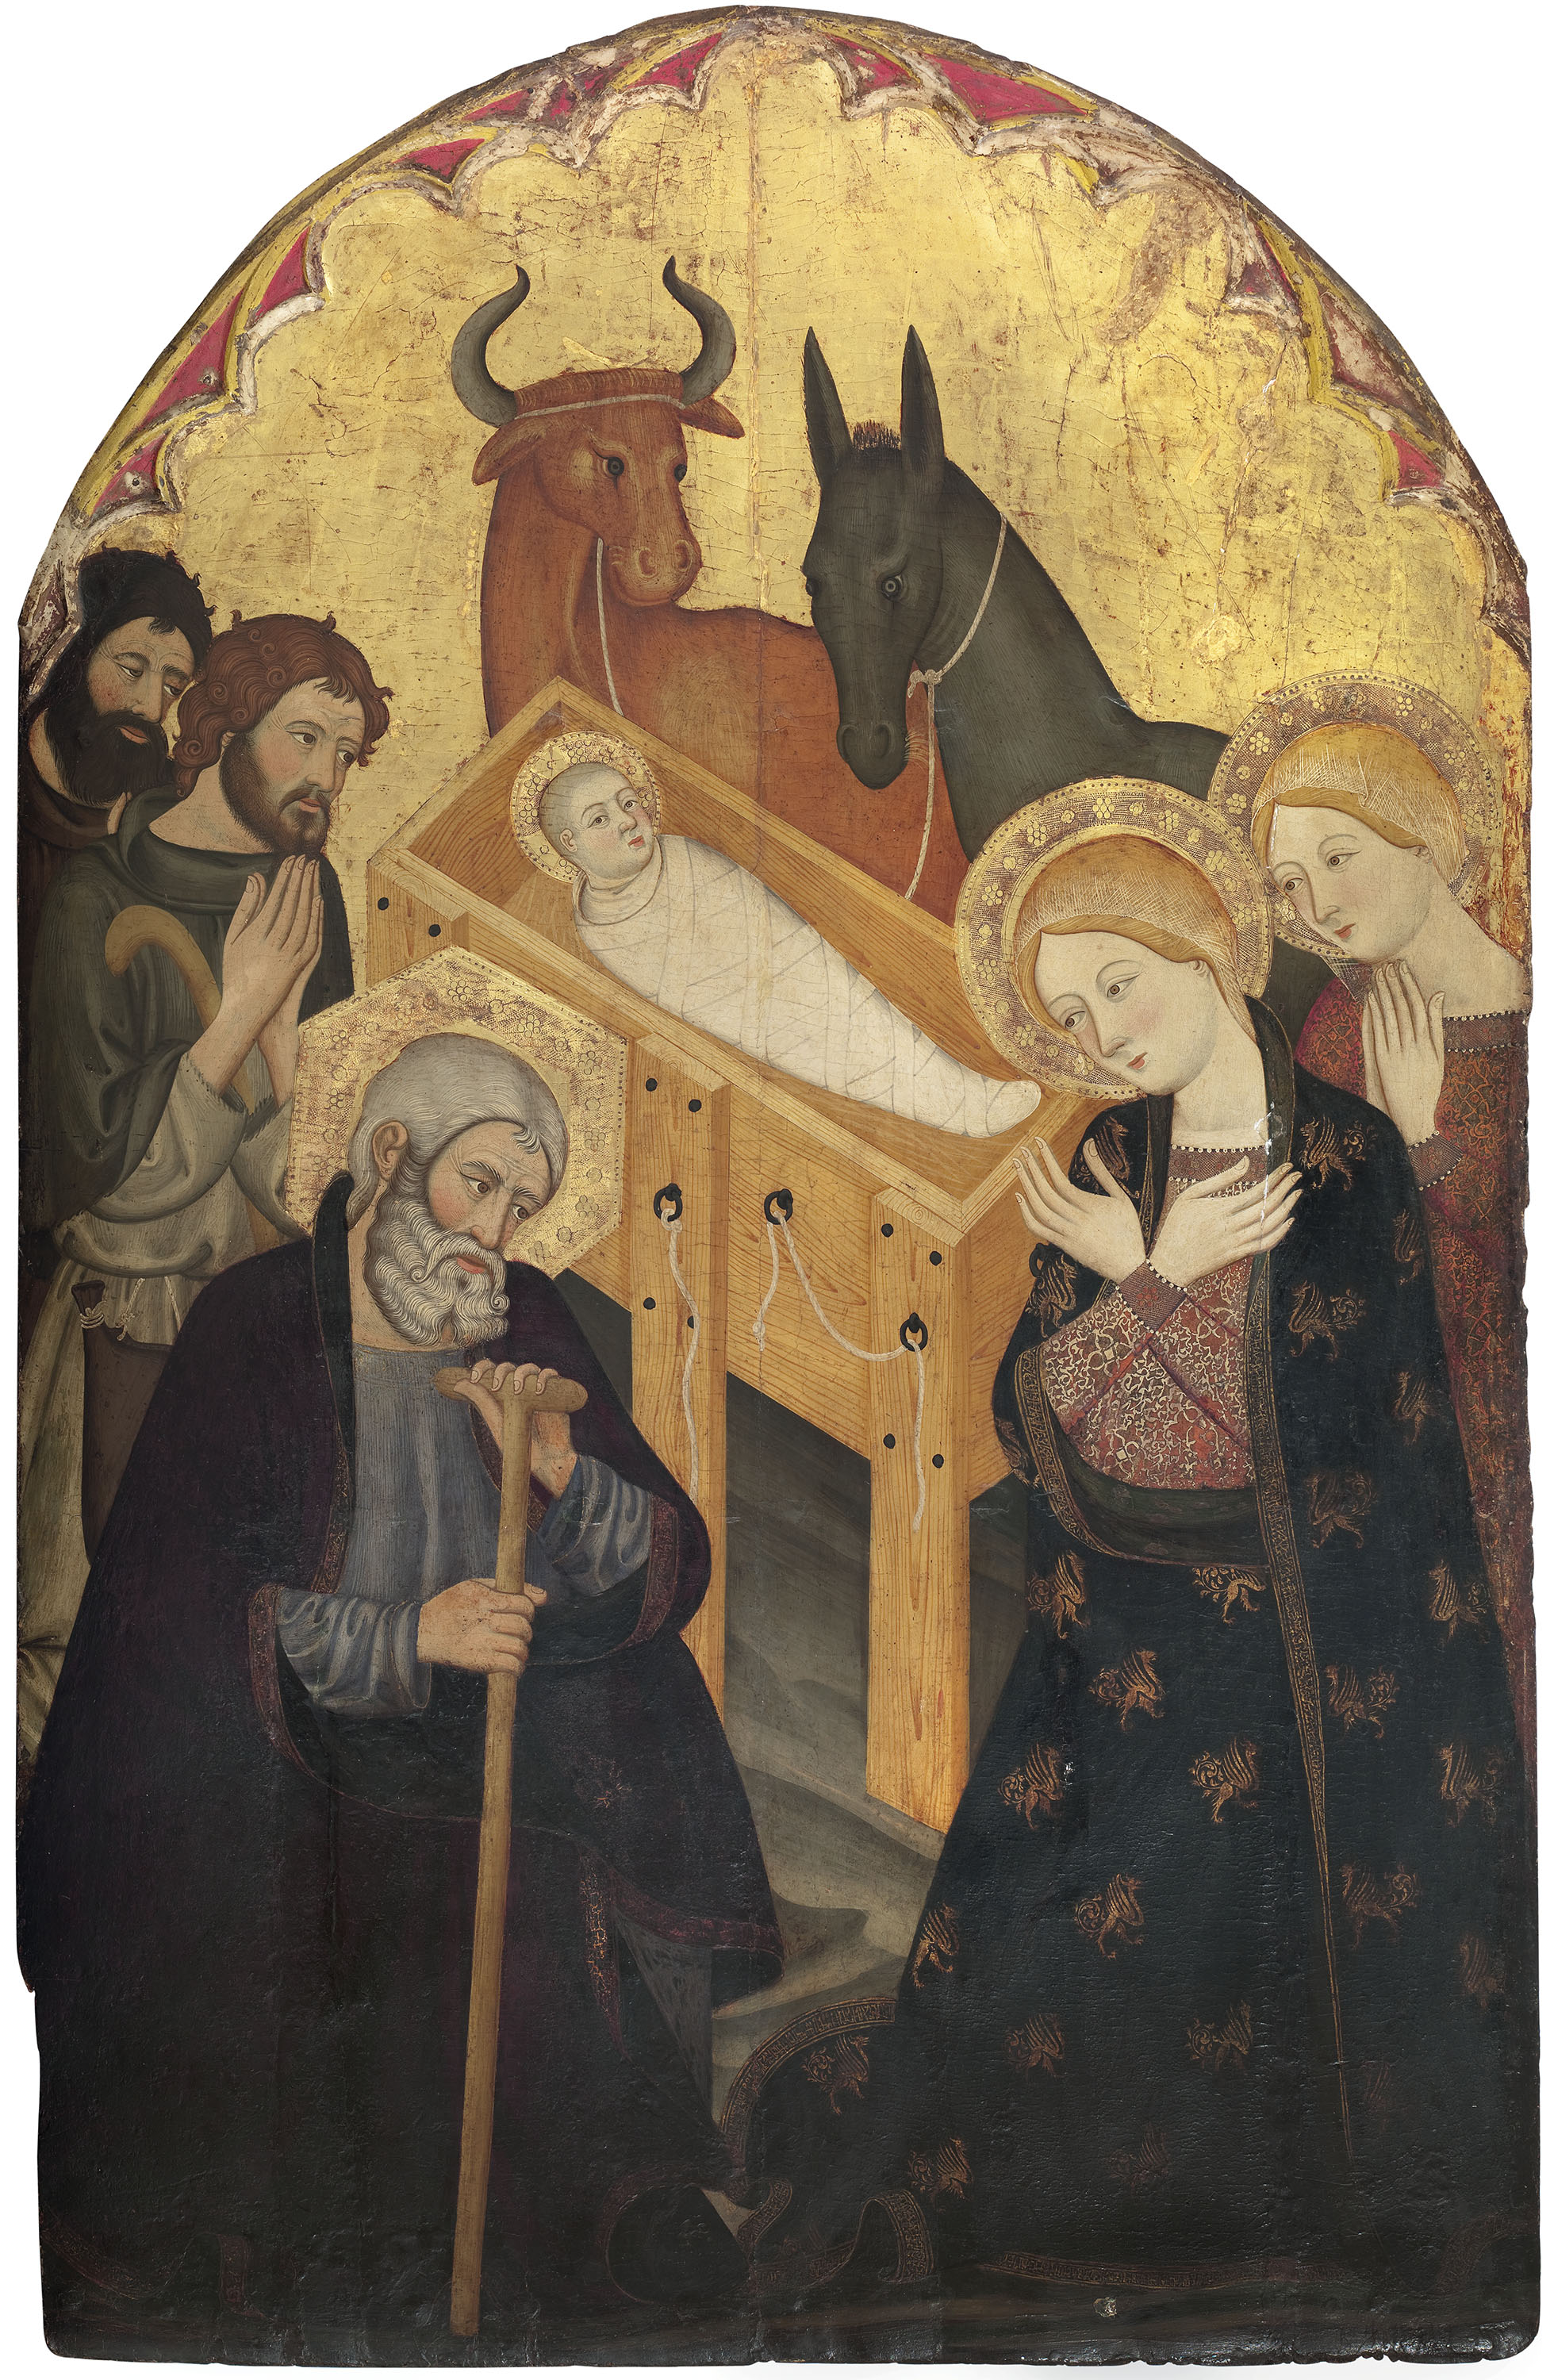 Taller dels germans Serra - Adoration of the Shepherds - Circa 1365-1375